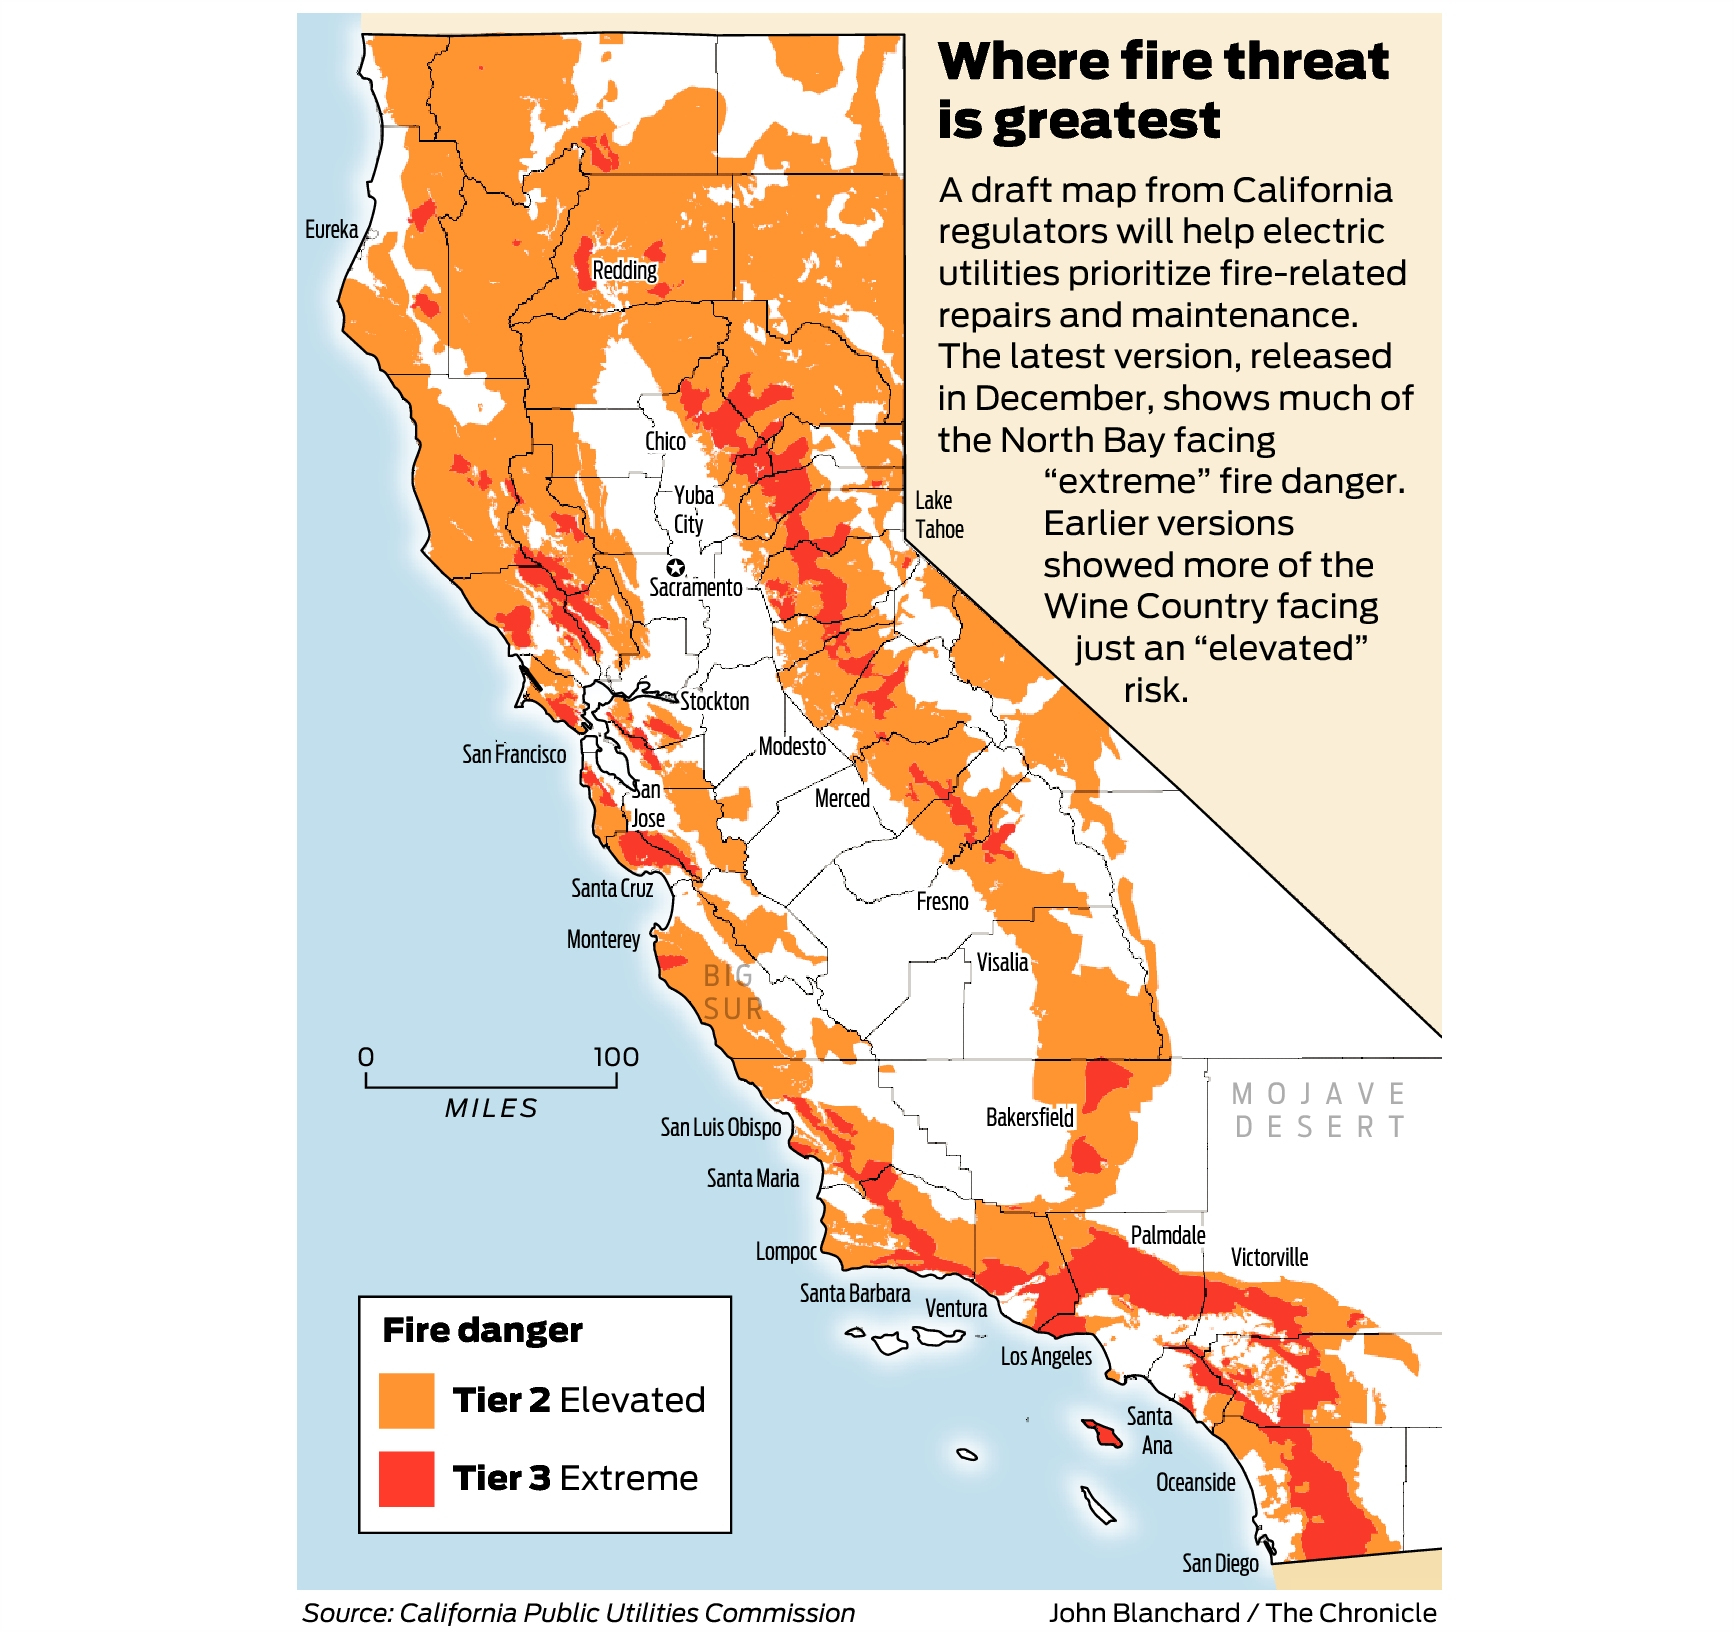 California Fire-Threat Map Not Quite Done But Close, Regulators Say - Where Are The Fires In California On A Map